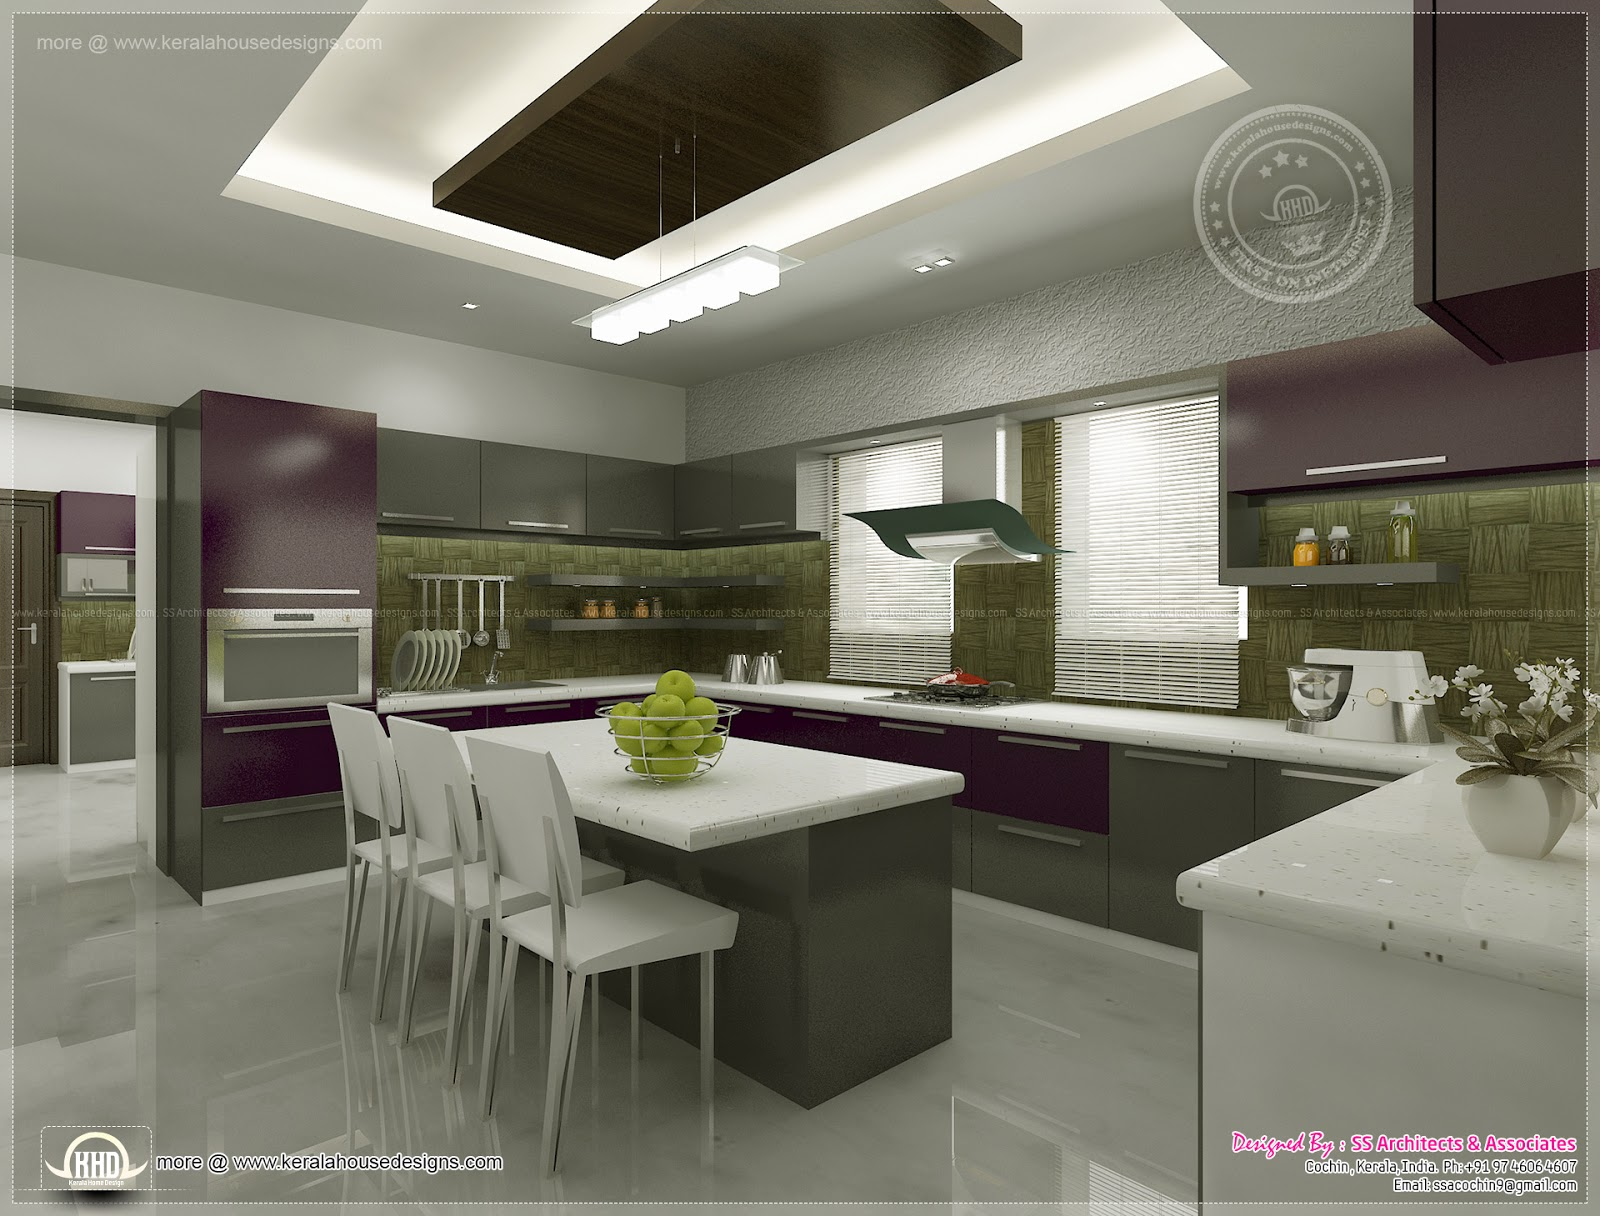 Kitchen interior views by ss architects cochin kerala for Interior designs for houses